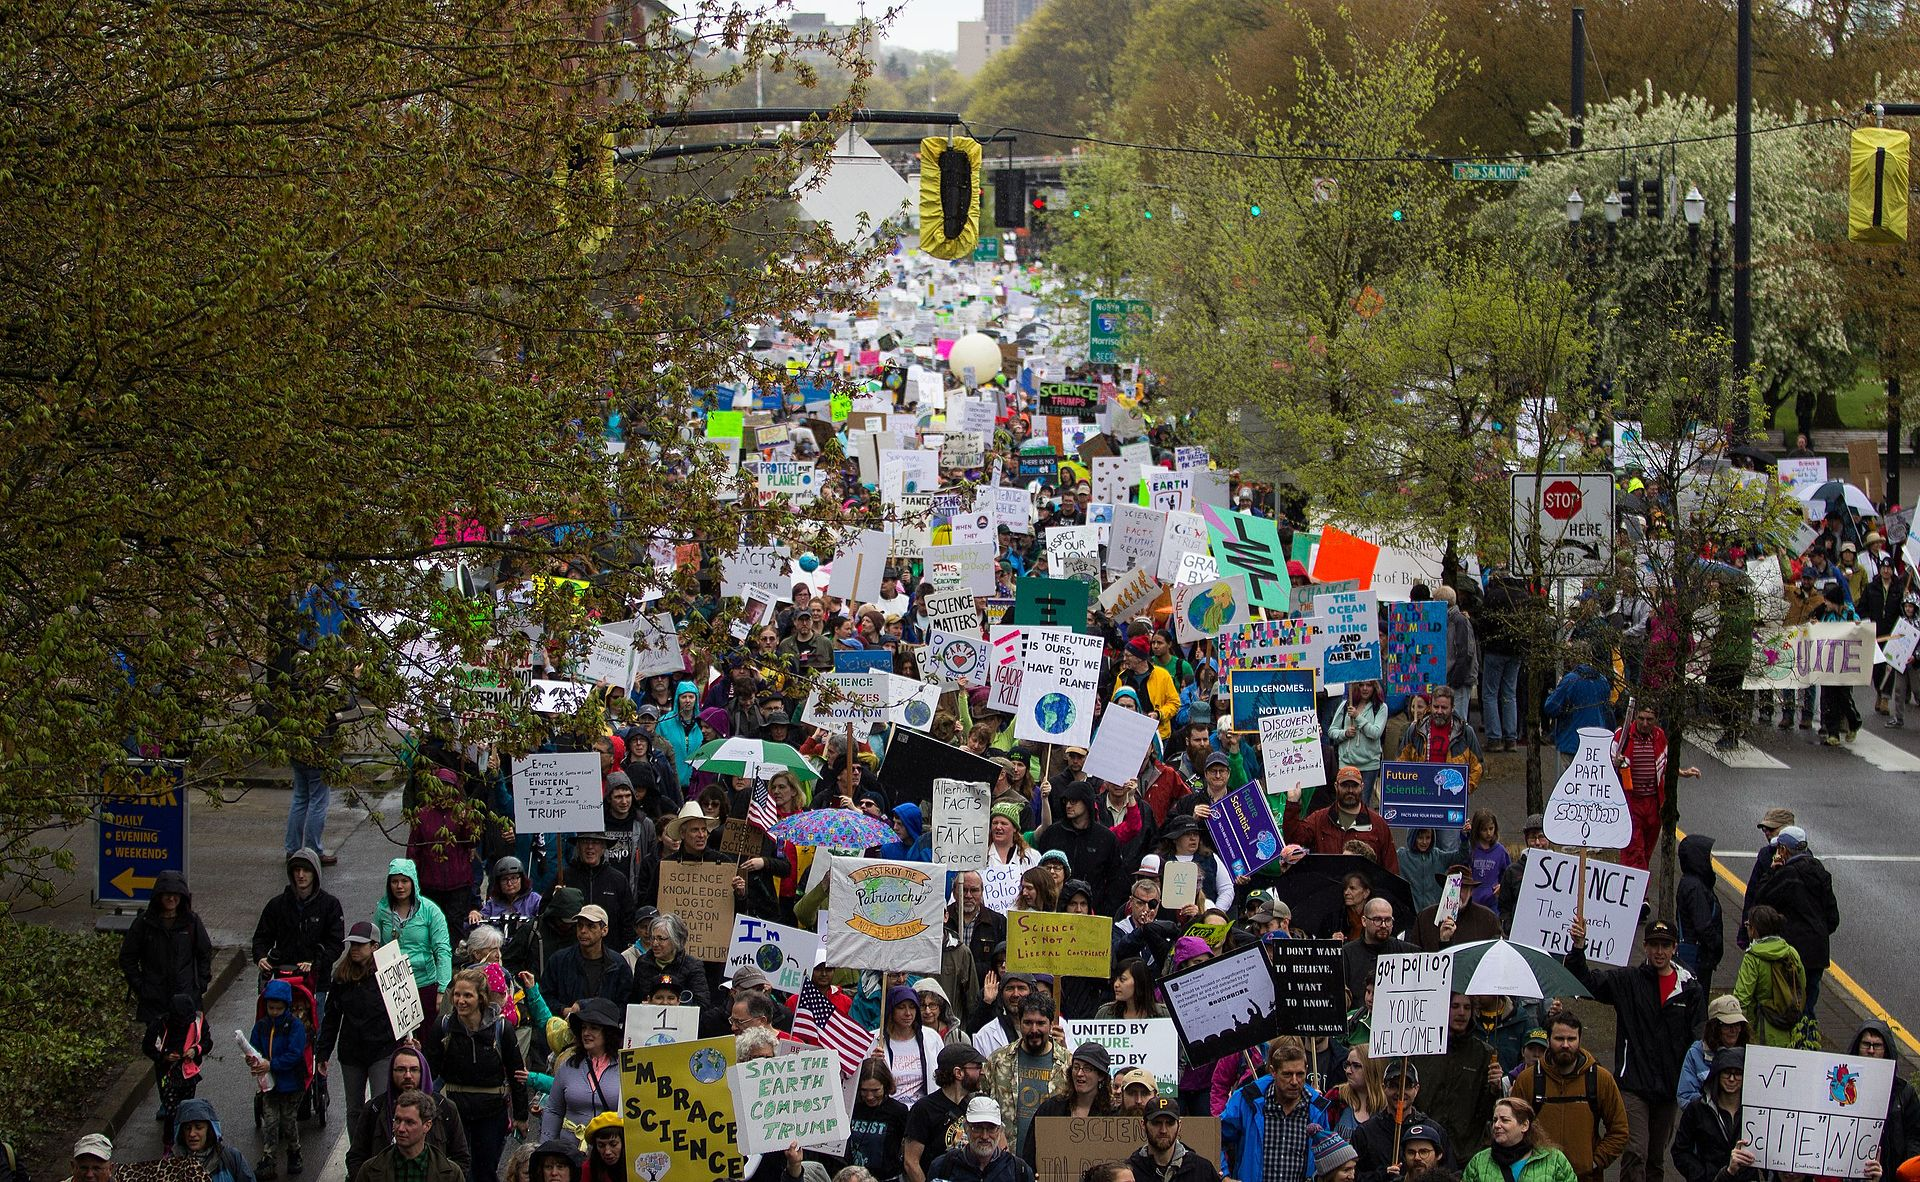 Thousands of science marchers huddled en masse in downtown Portland, Oregon.